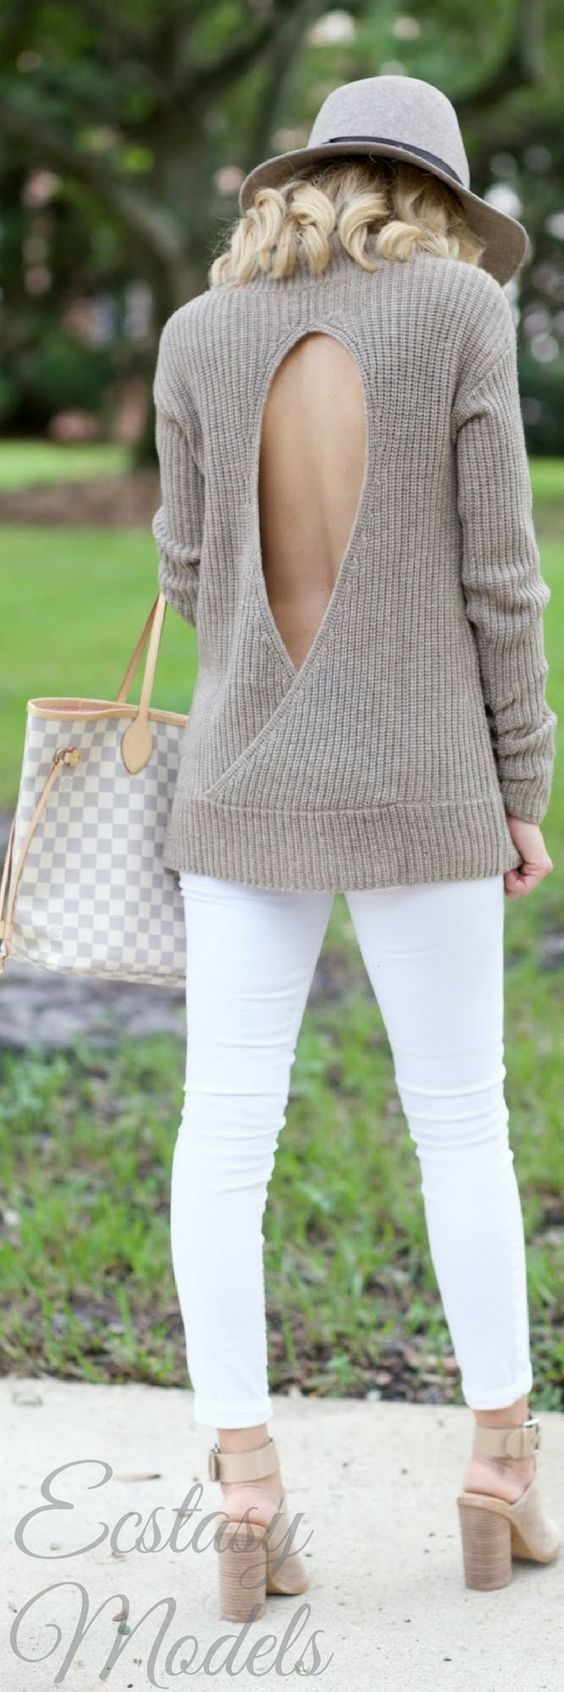 Open Back  Sweater For Fall // Fashion Look by A Spoonful Of Style